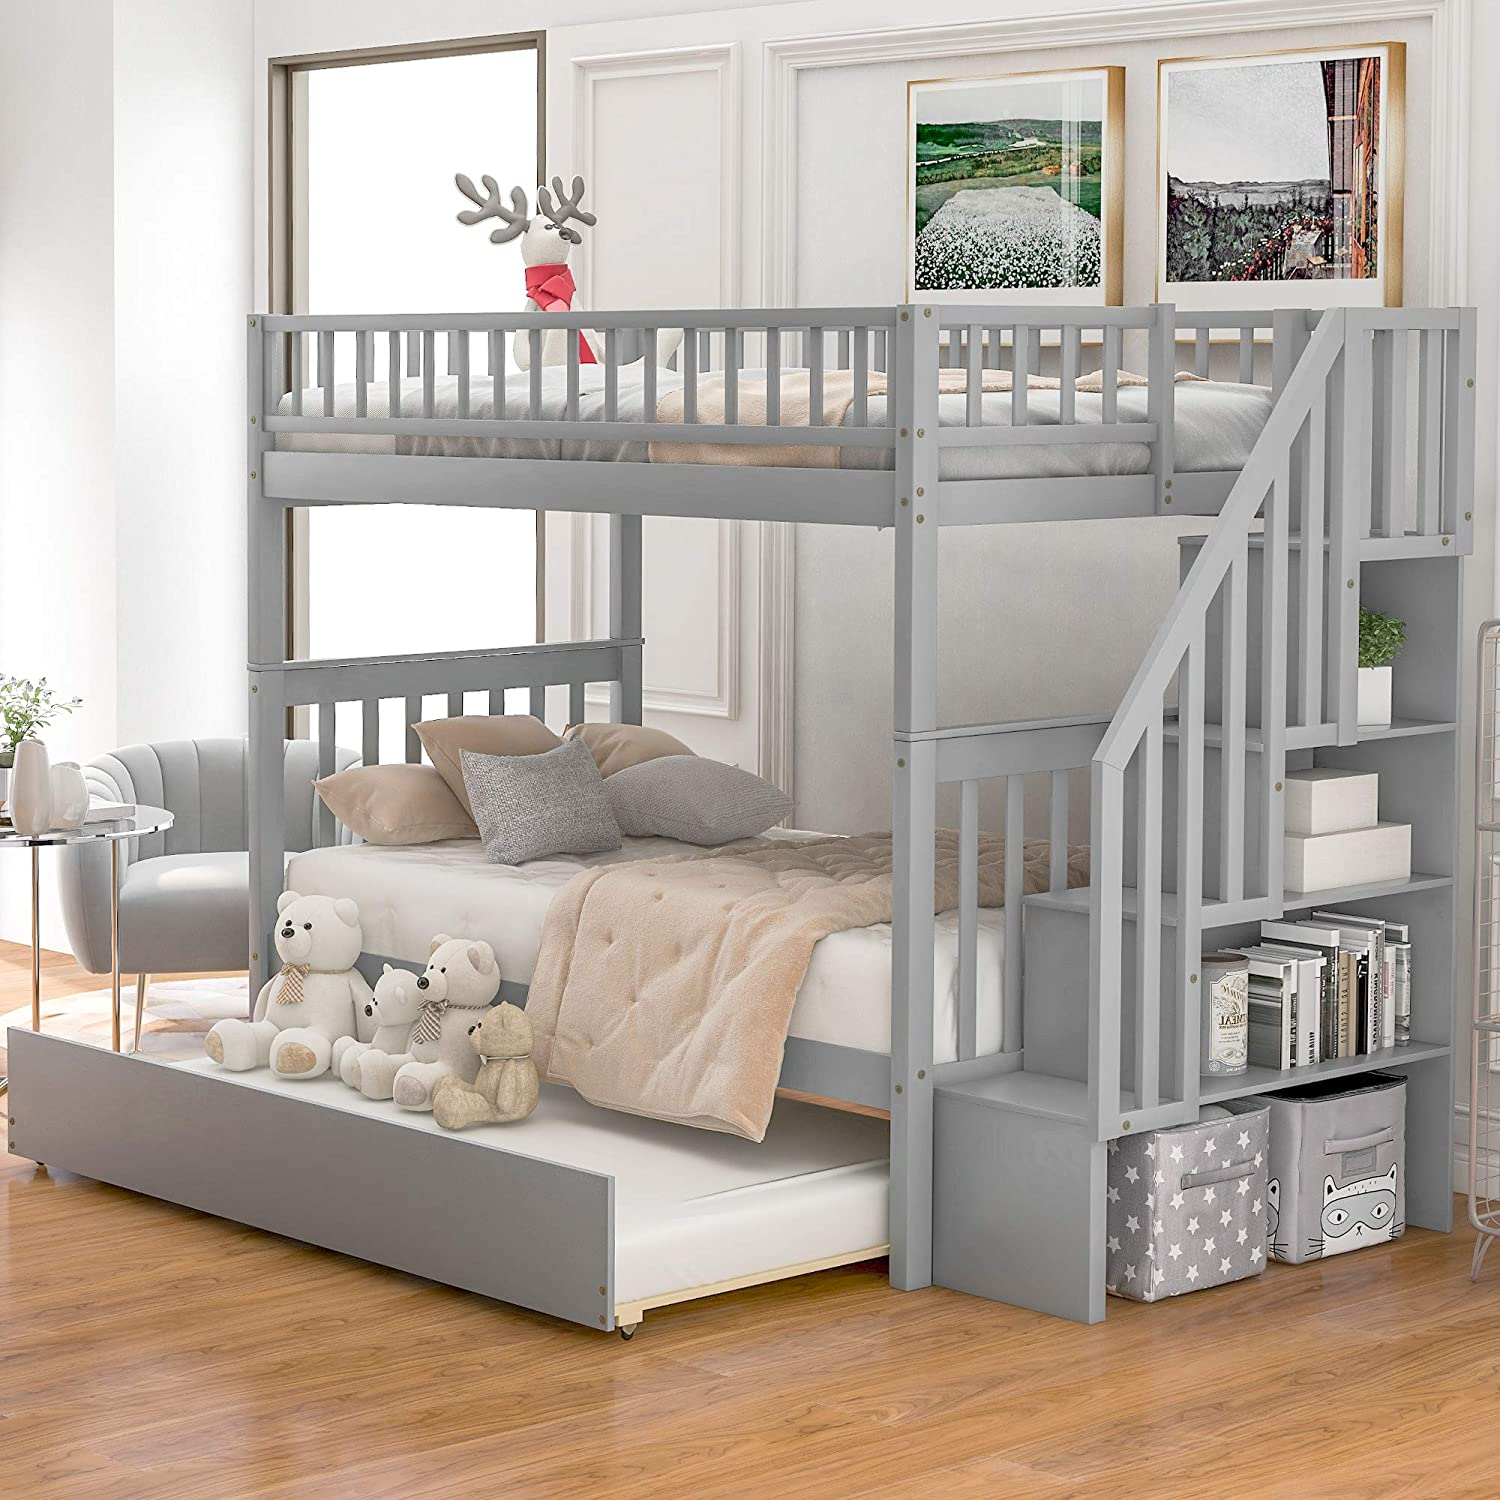 Buy Softsea Twin Over Twin Bunk Bed With Trundle And Stairs Wood Bunk Beds For Kids Toddlers Teens Grey Online In Indonesia B08bfhq5dx